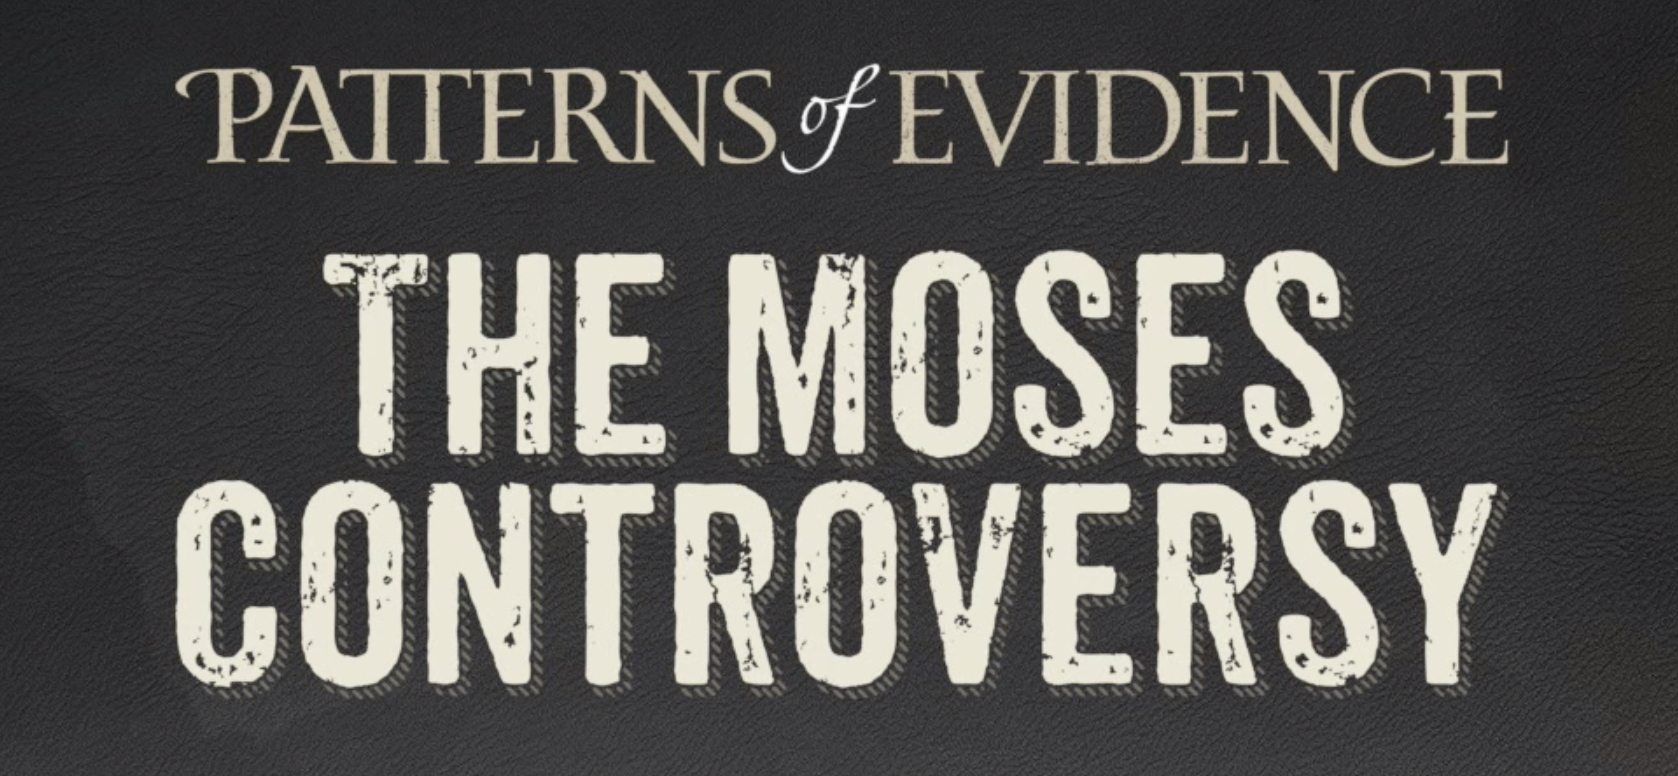 Mahoney's Patterns of Evidence: Moses Controversy